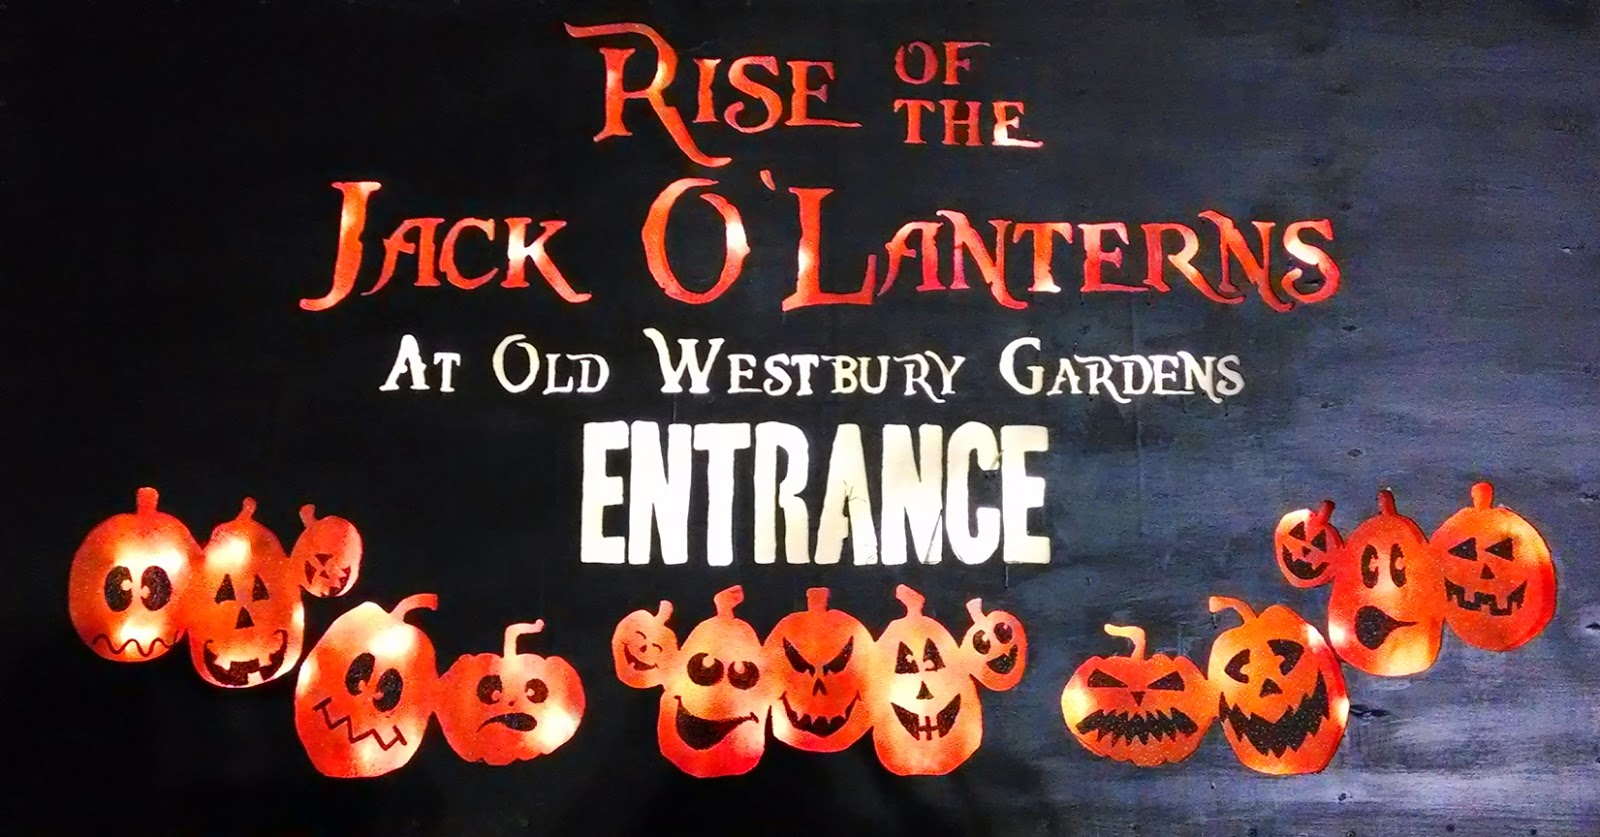 Long Island Images Old Westbury Gardens Rise Of The